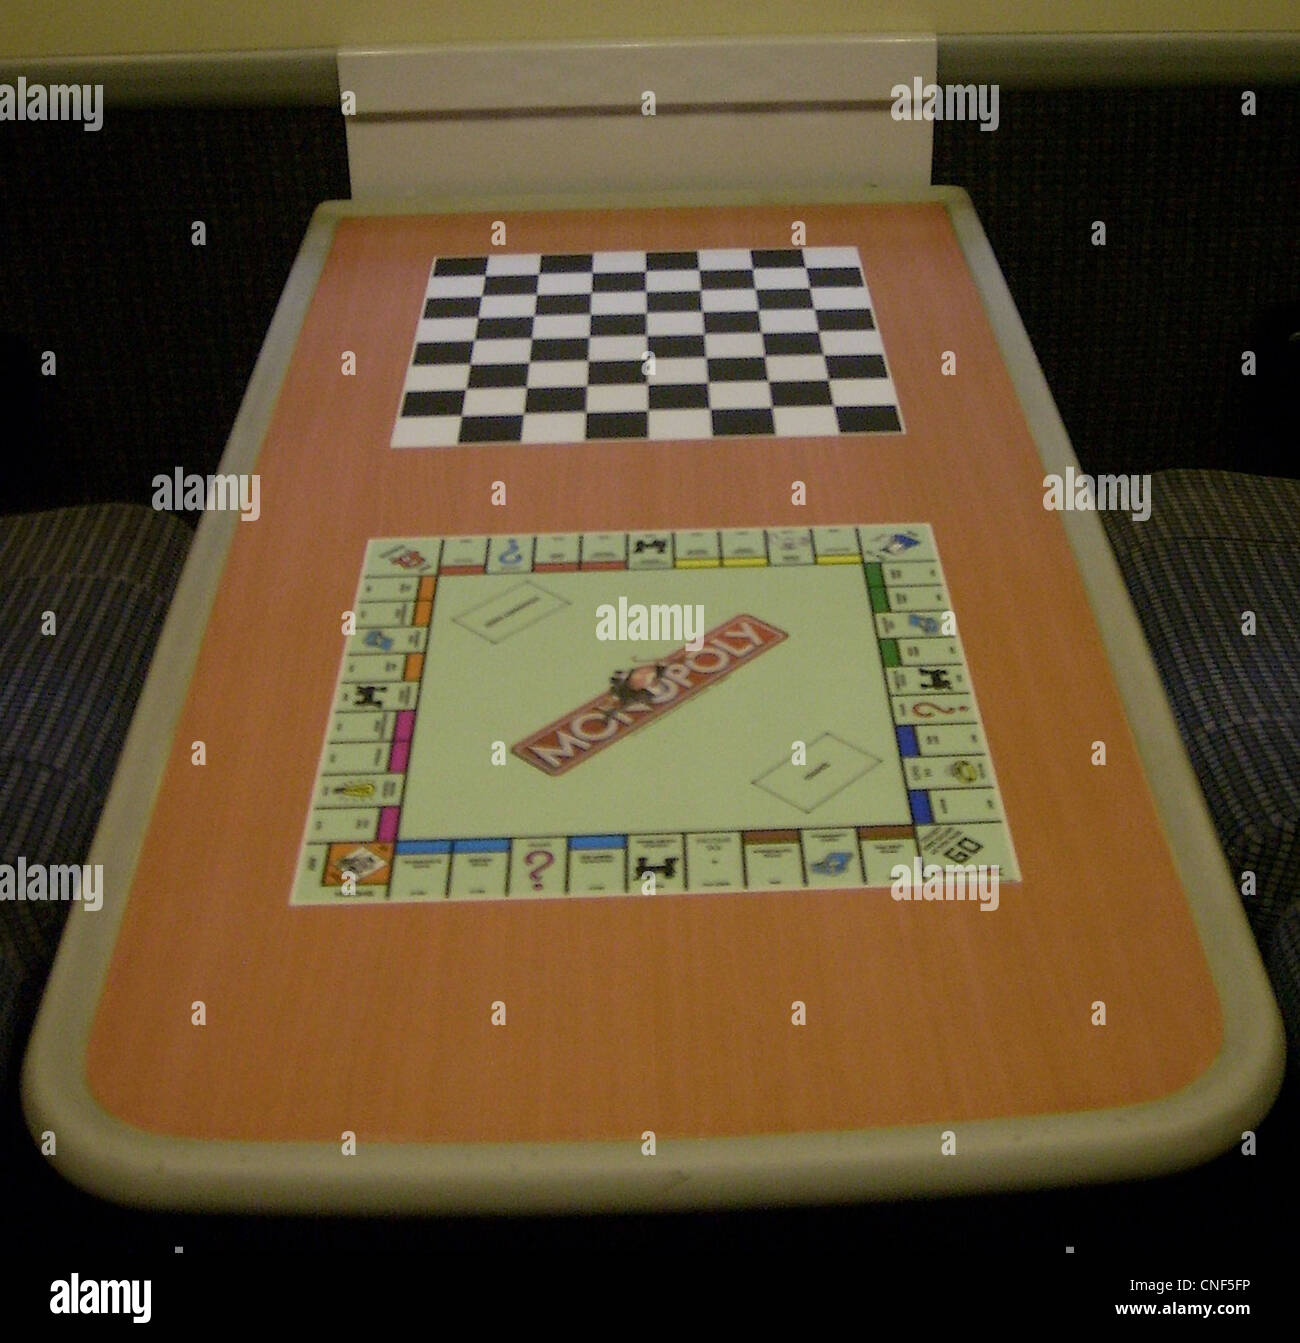 The Unique Combined Chess And Monopoly Game Boards On The Table Top Surface